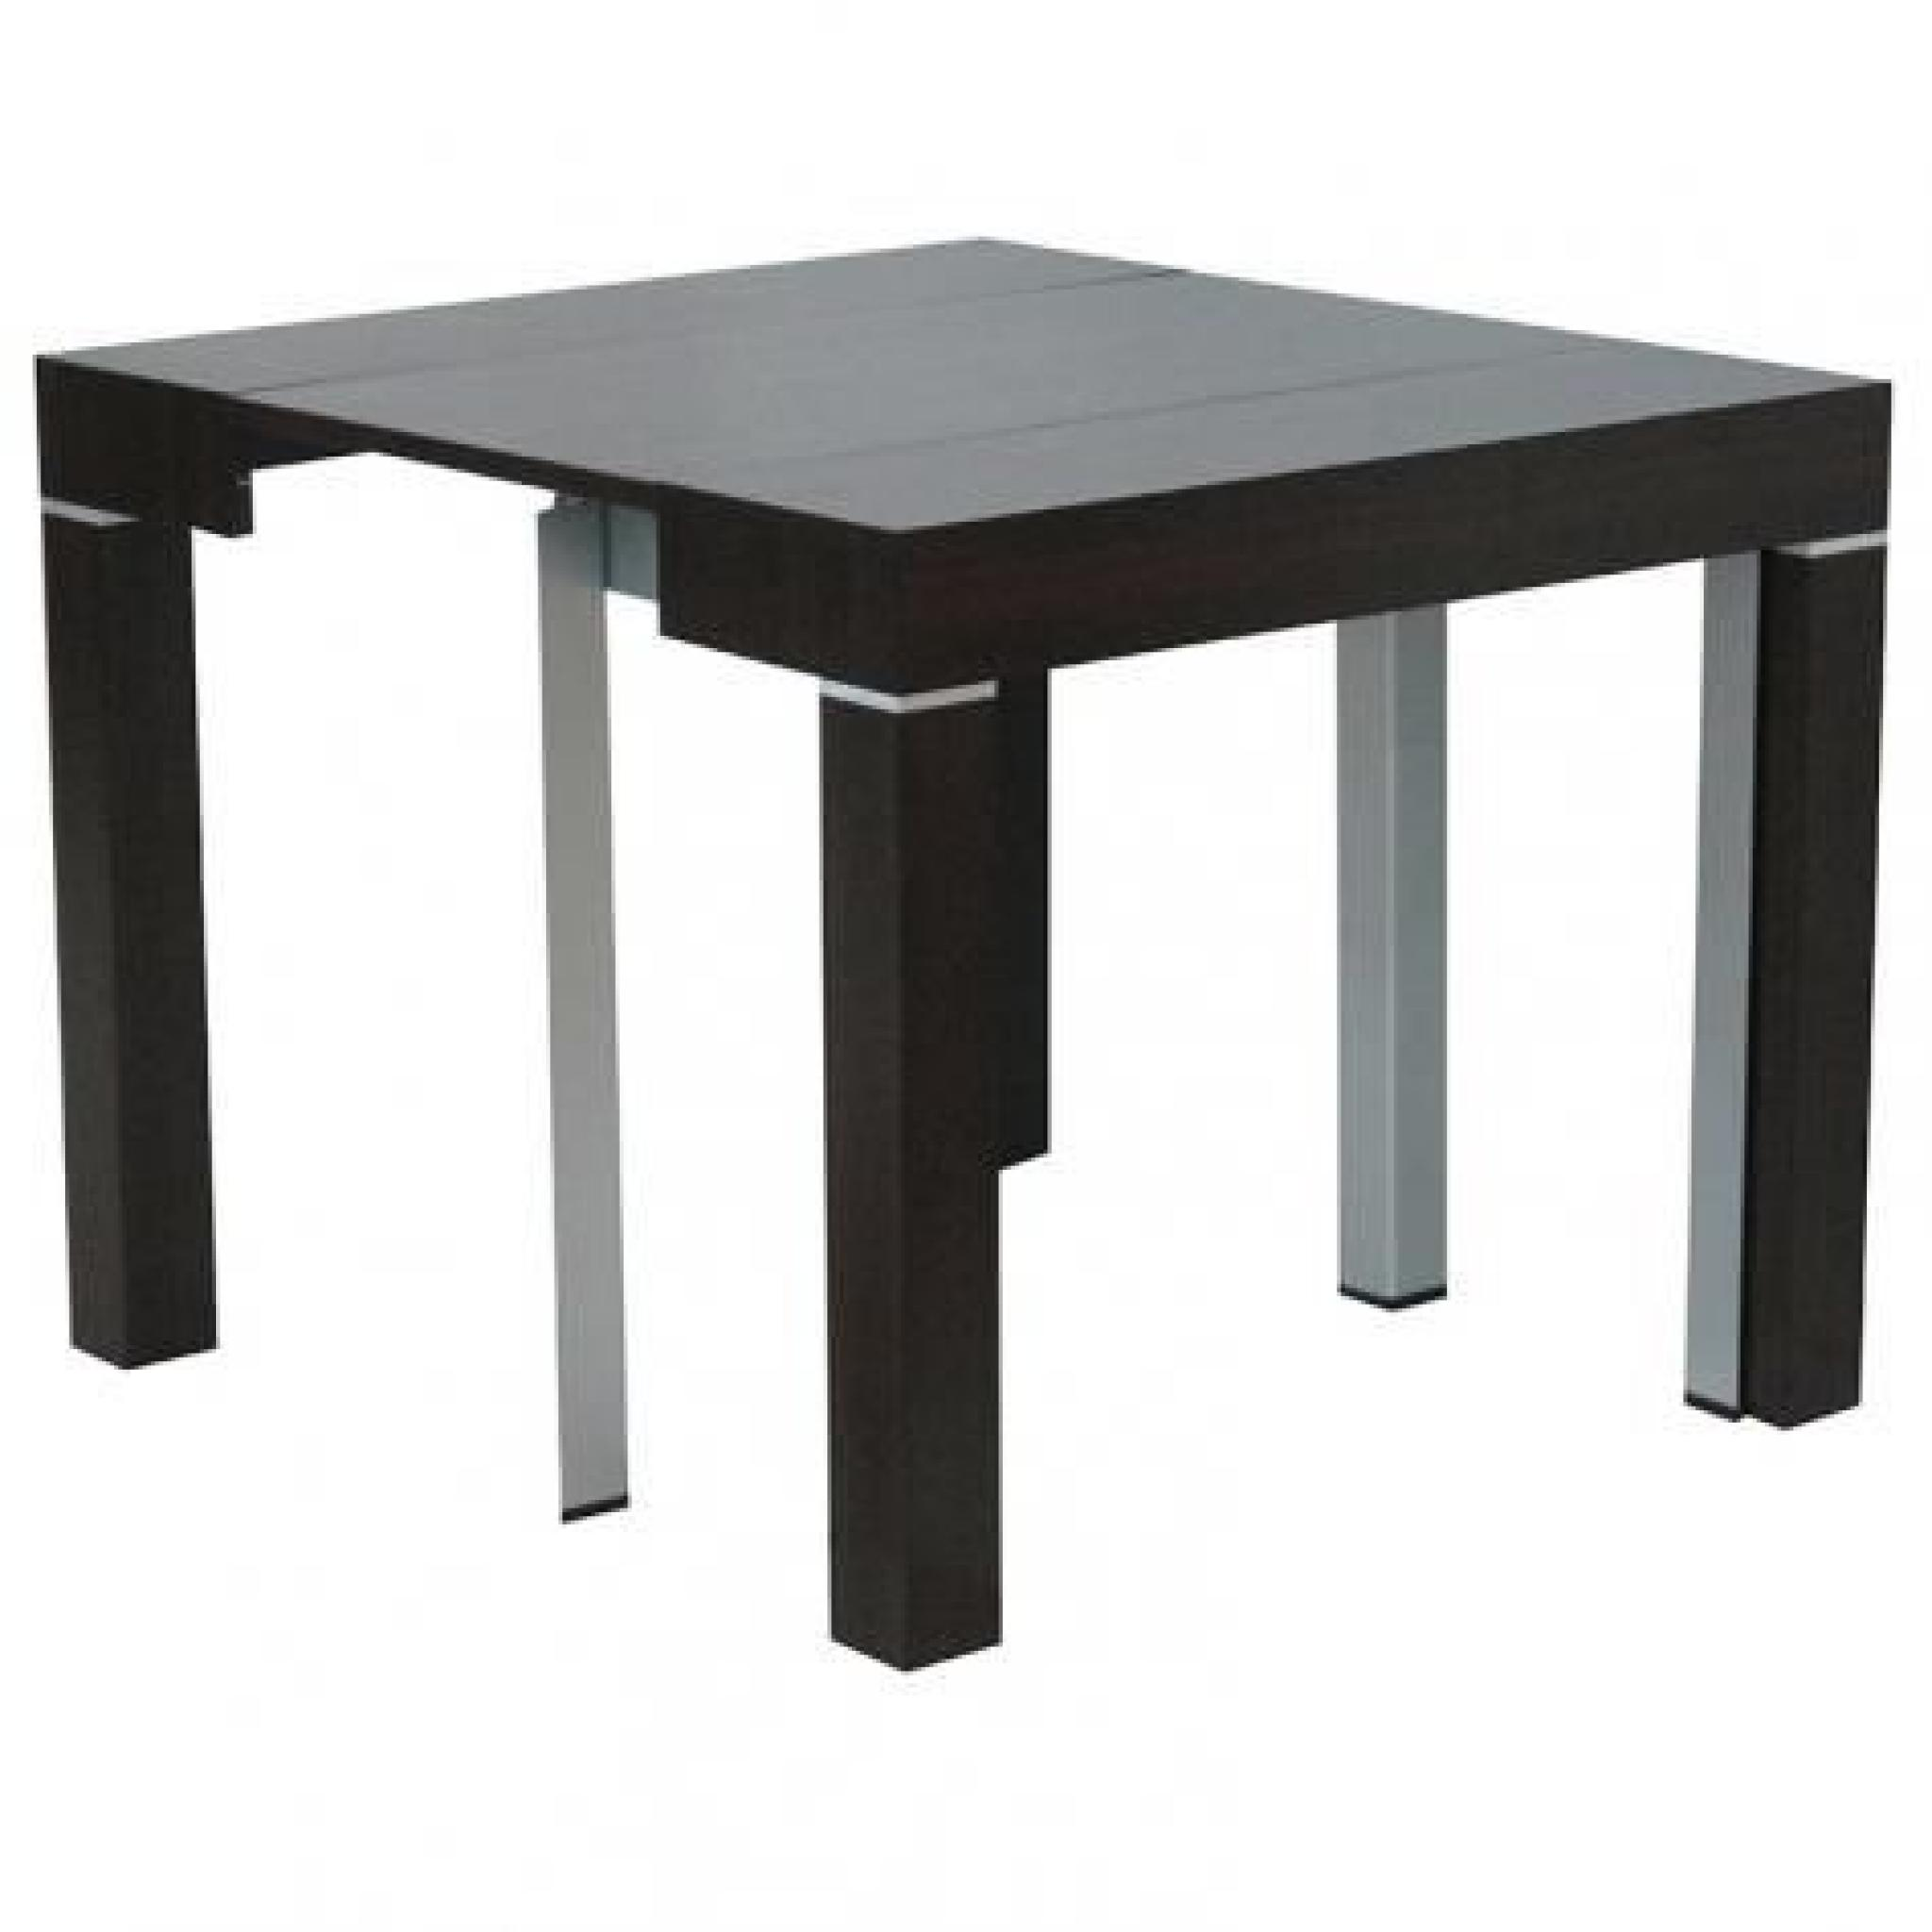 Table console extensible wenge avec 4 rallonges alesia achat vente ensemble - Table extensible wenge ...